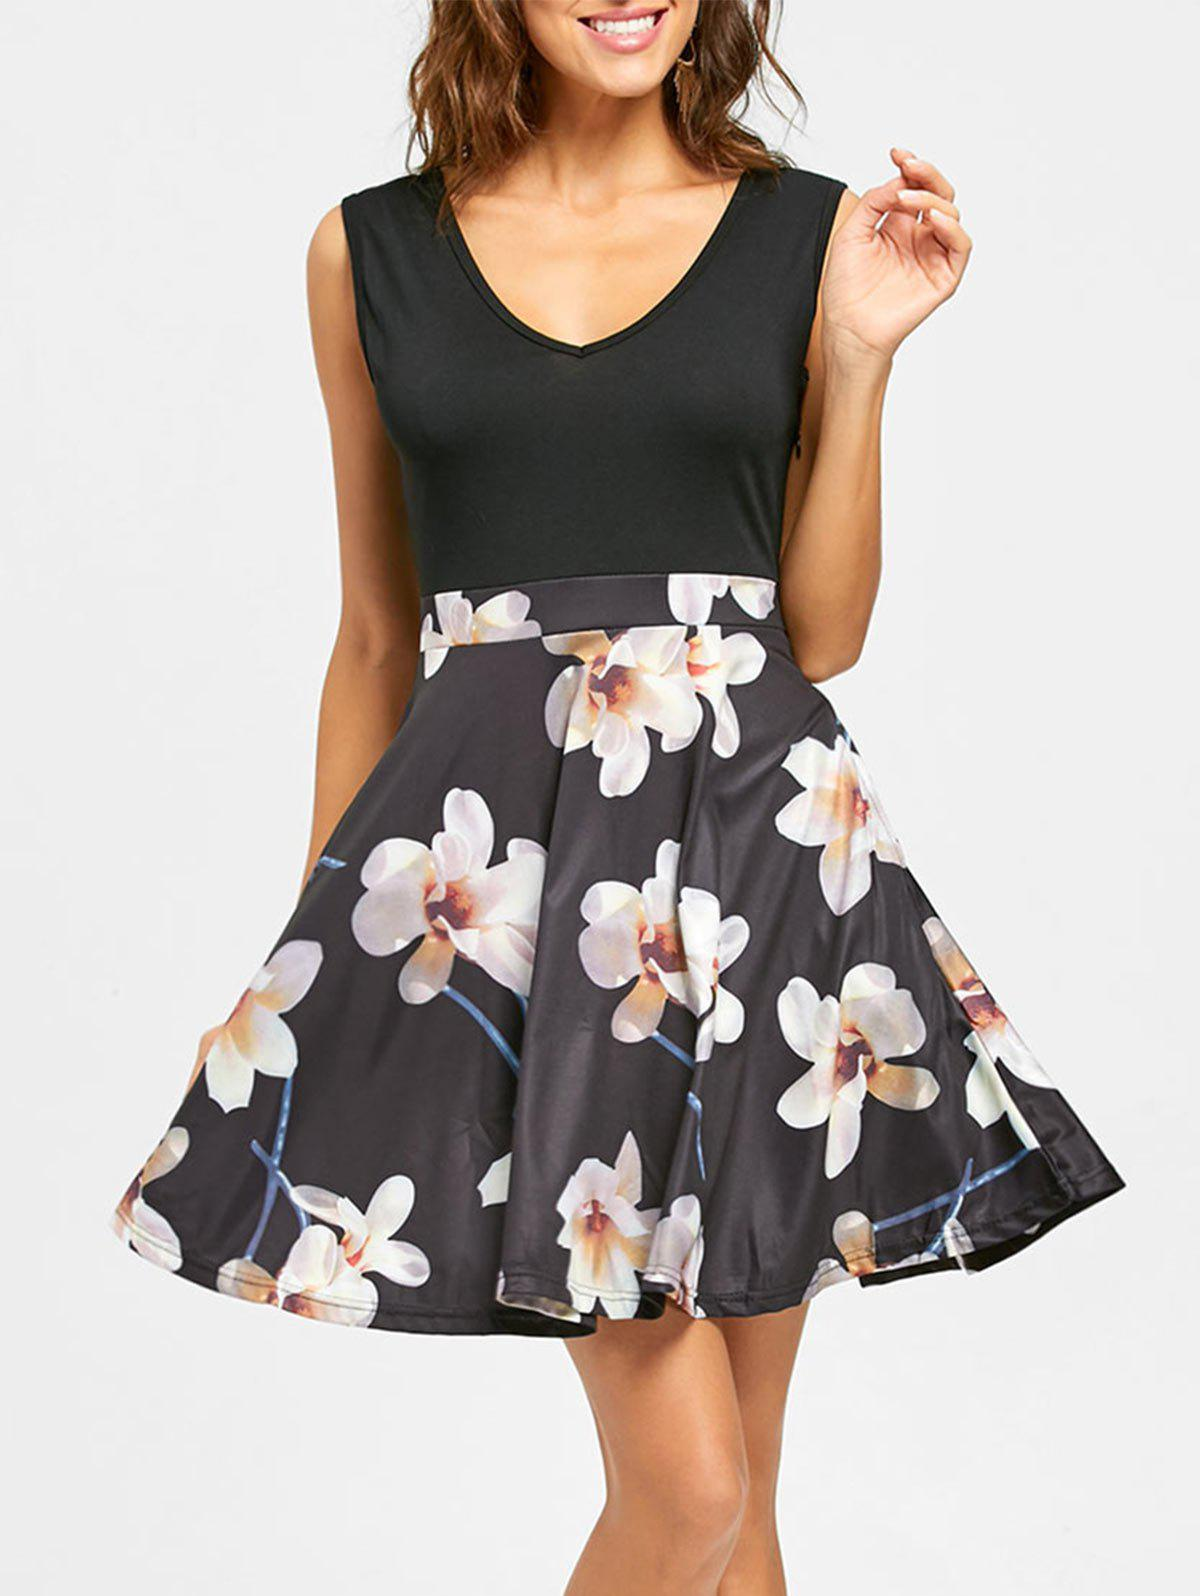 Floral Print V Neck Sleeveless Mini Dress - BLACK L